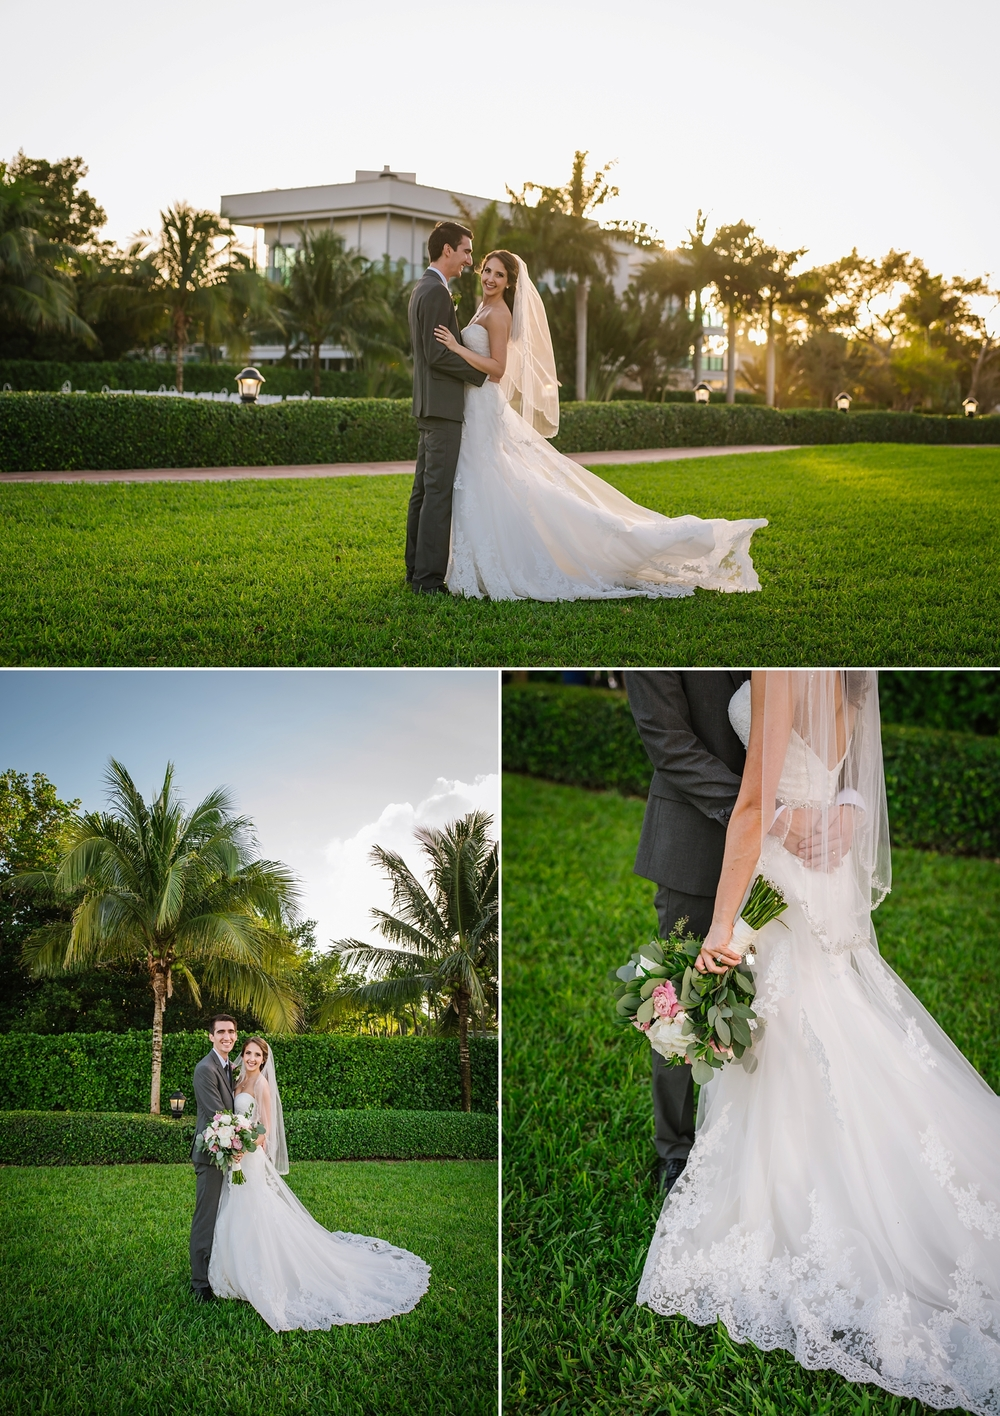 miami-wedding-photography-ashlee-hamon-elegant-vintage-antique-wedding_0020.jpg